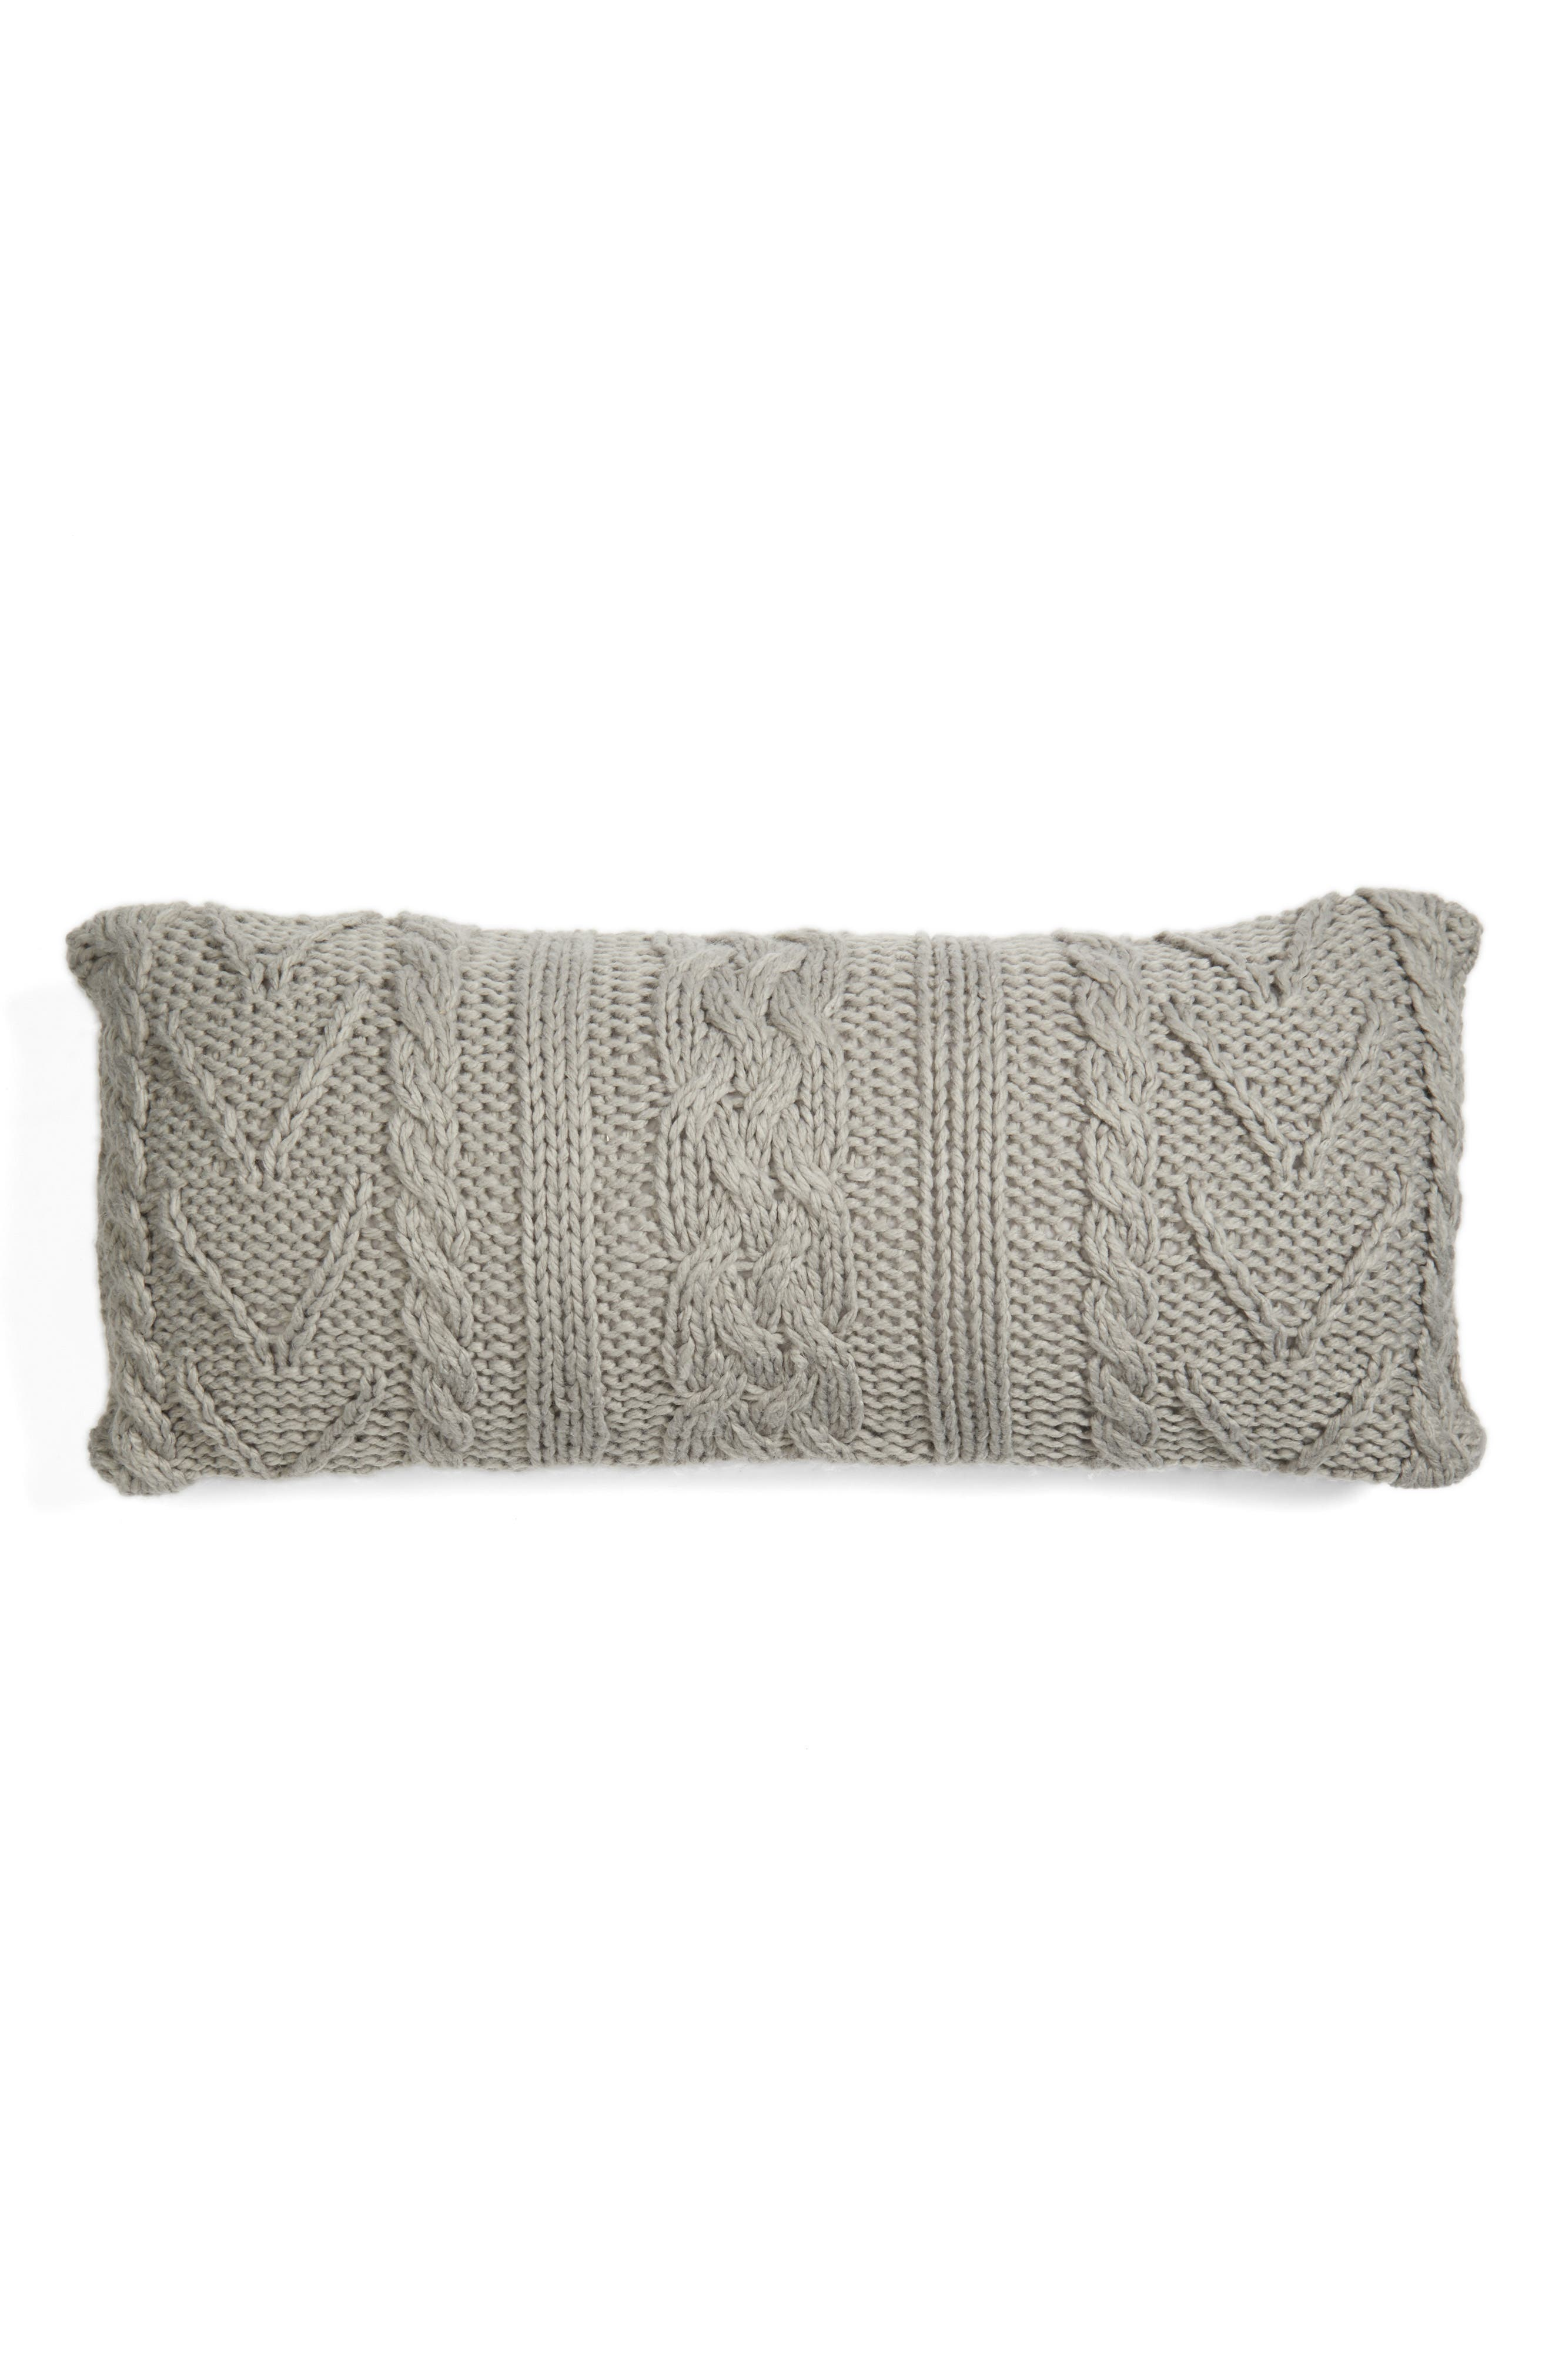 Cable Knit Accent Pillow,                             Main thumbnail 1, color,                             020